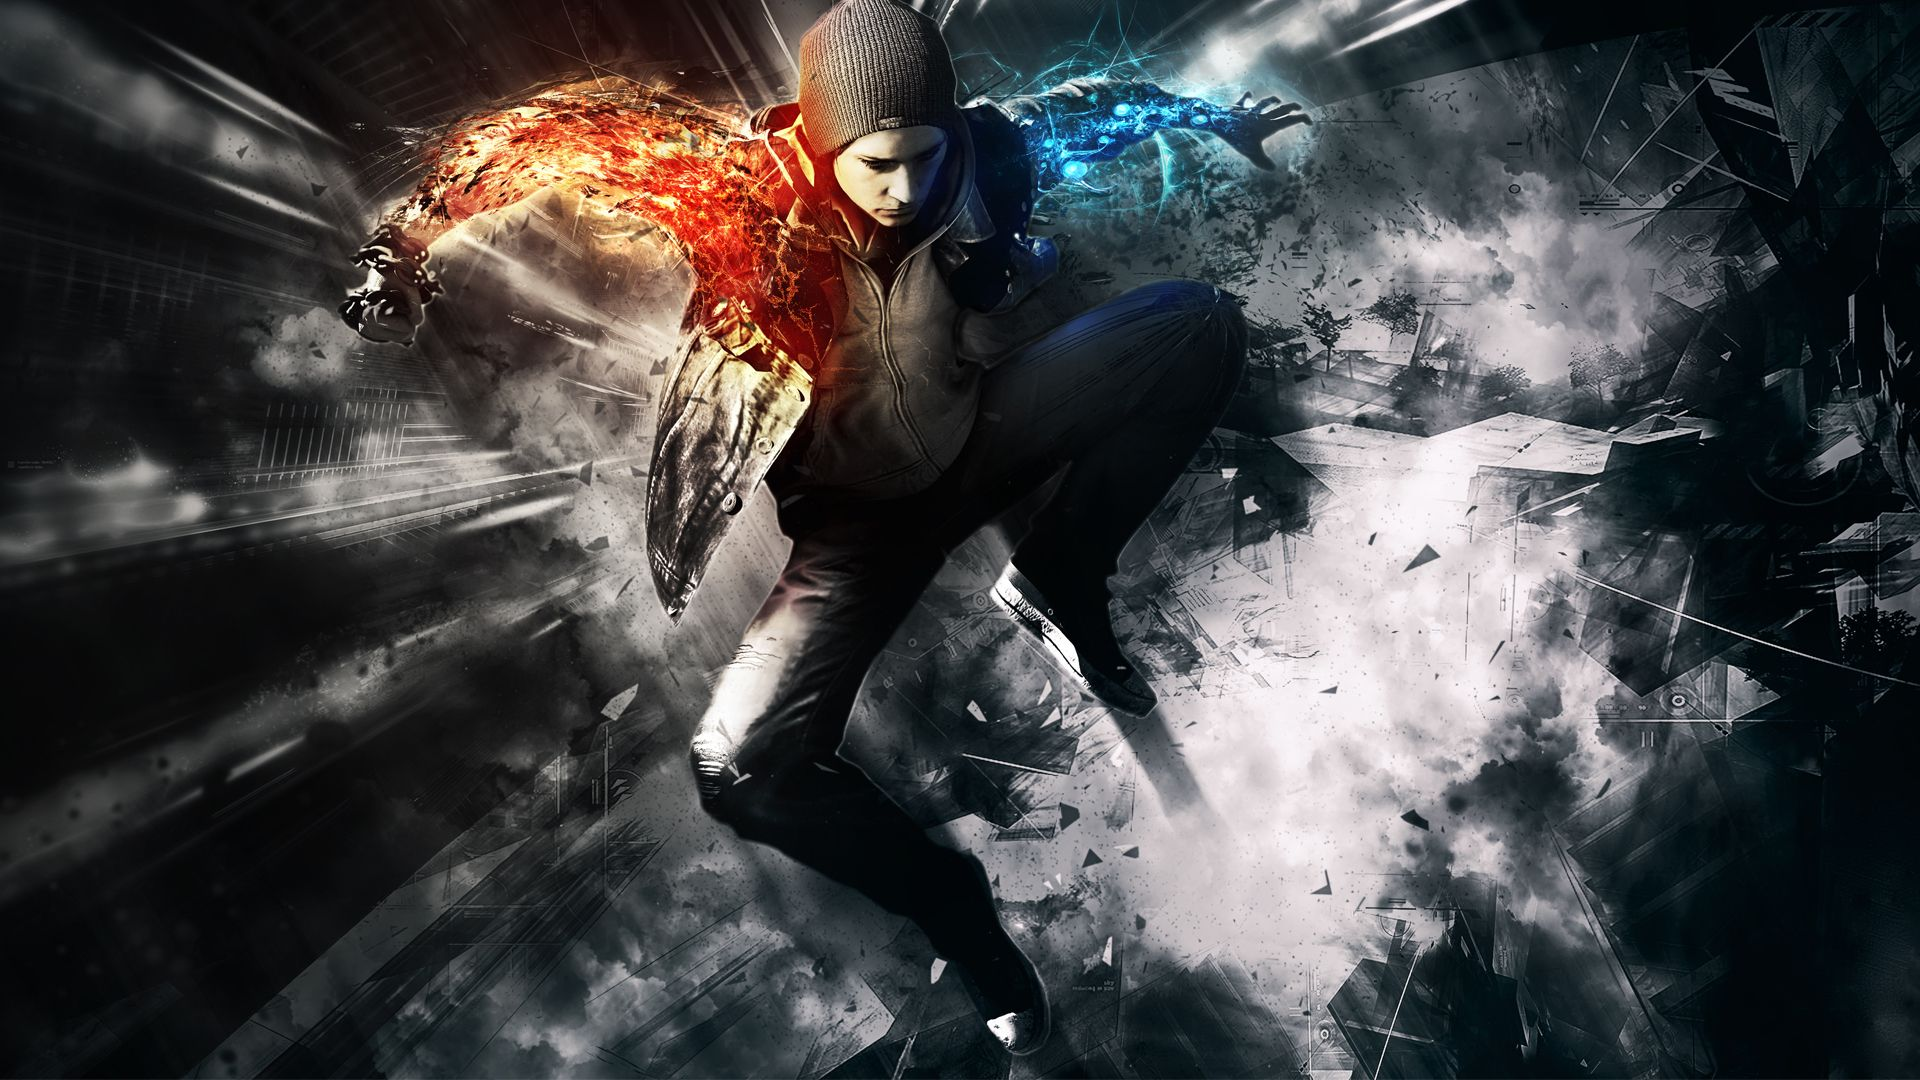 Pin by marina rosalez on backgrounds infamous second son video game backgrounds gaming - Video game live wallpapers ...